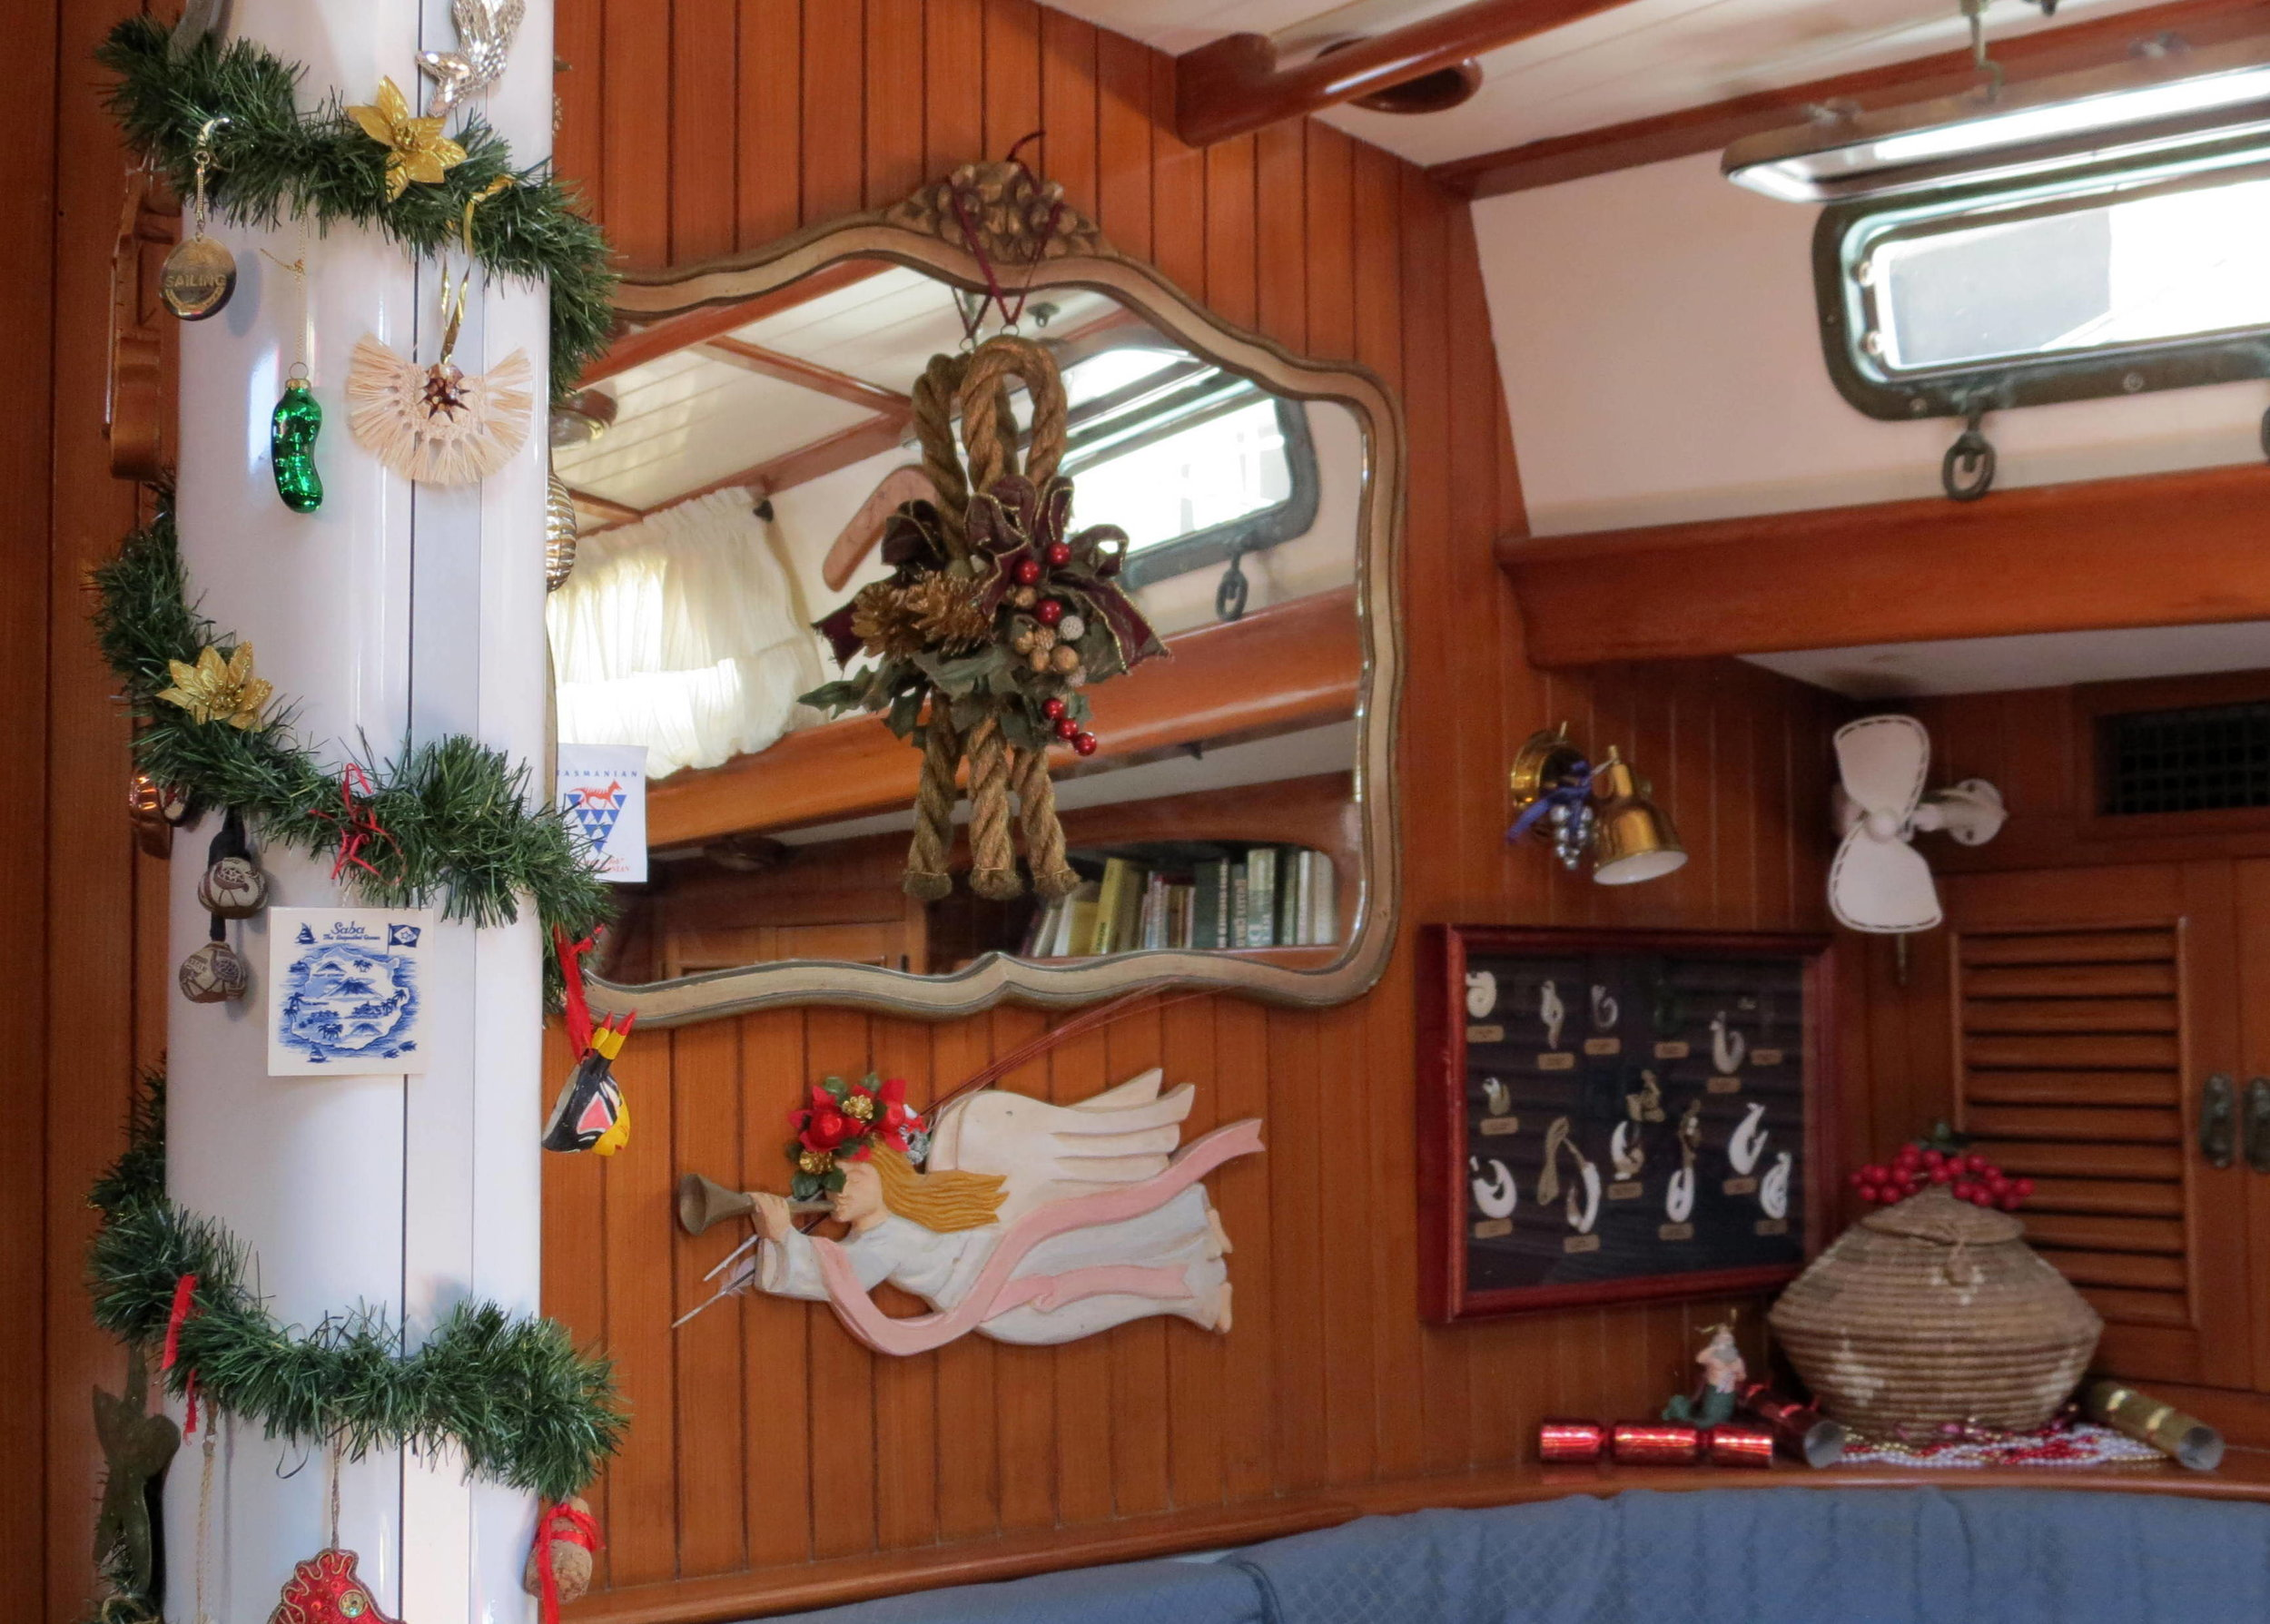 When we lived aboard Nine of Cups, we decorated the mast instead of a tree.